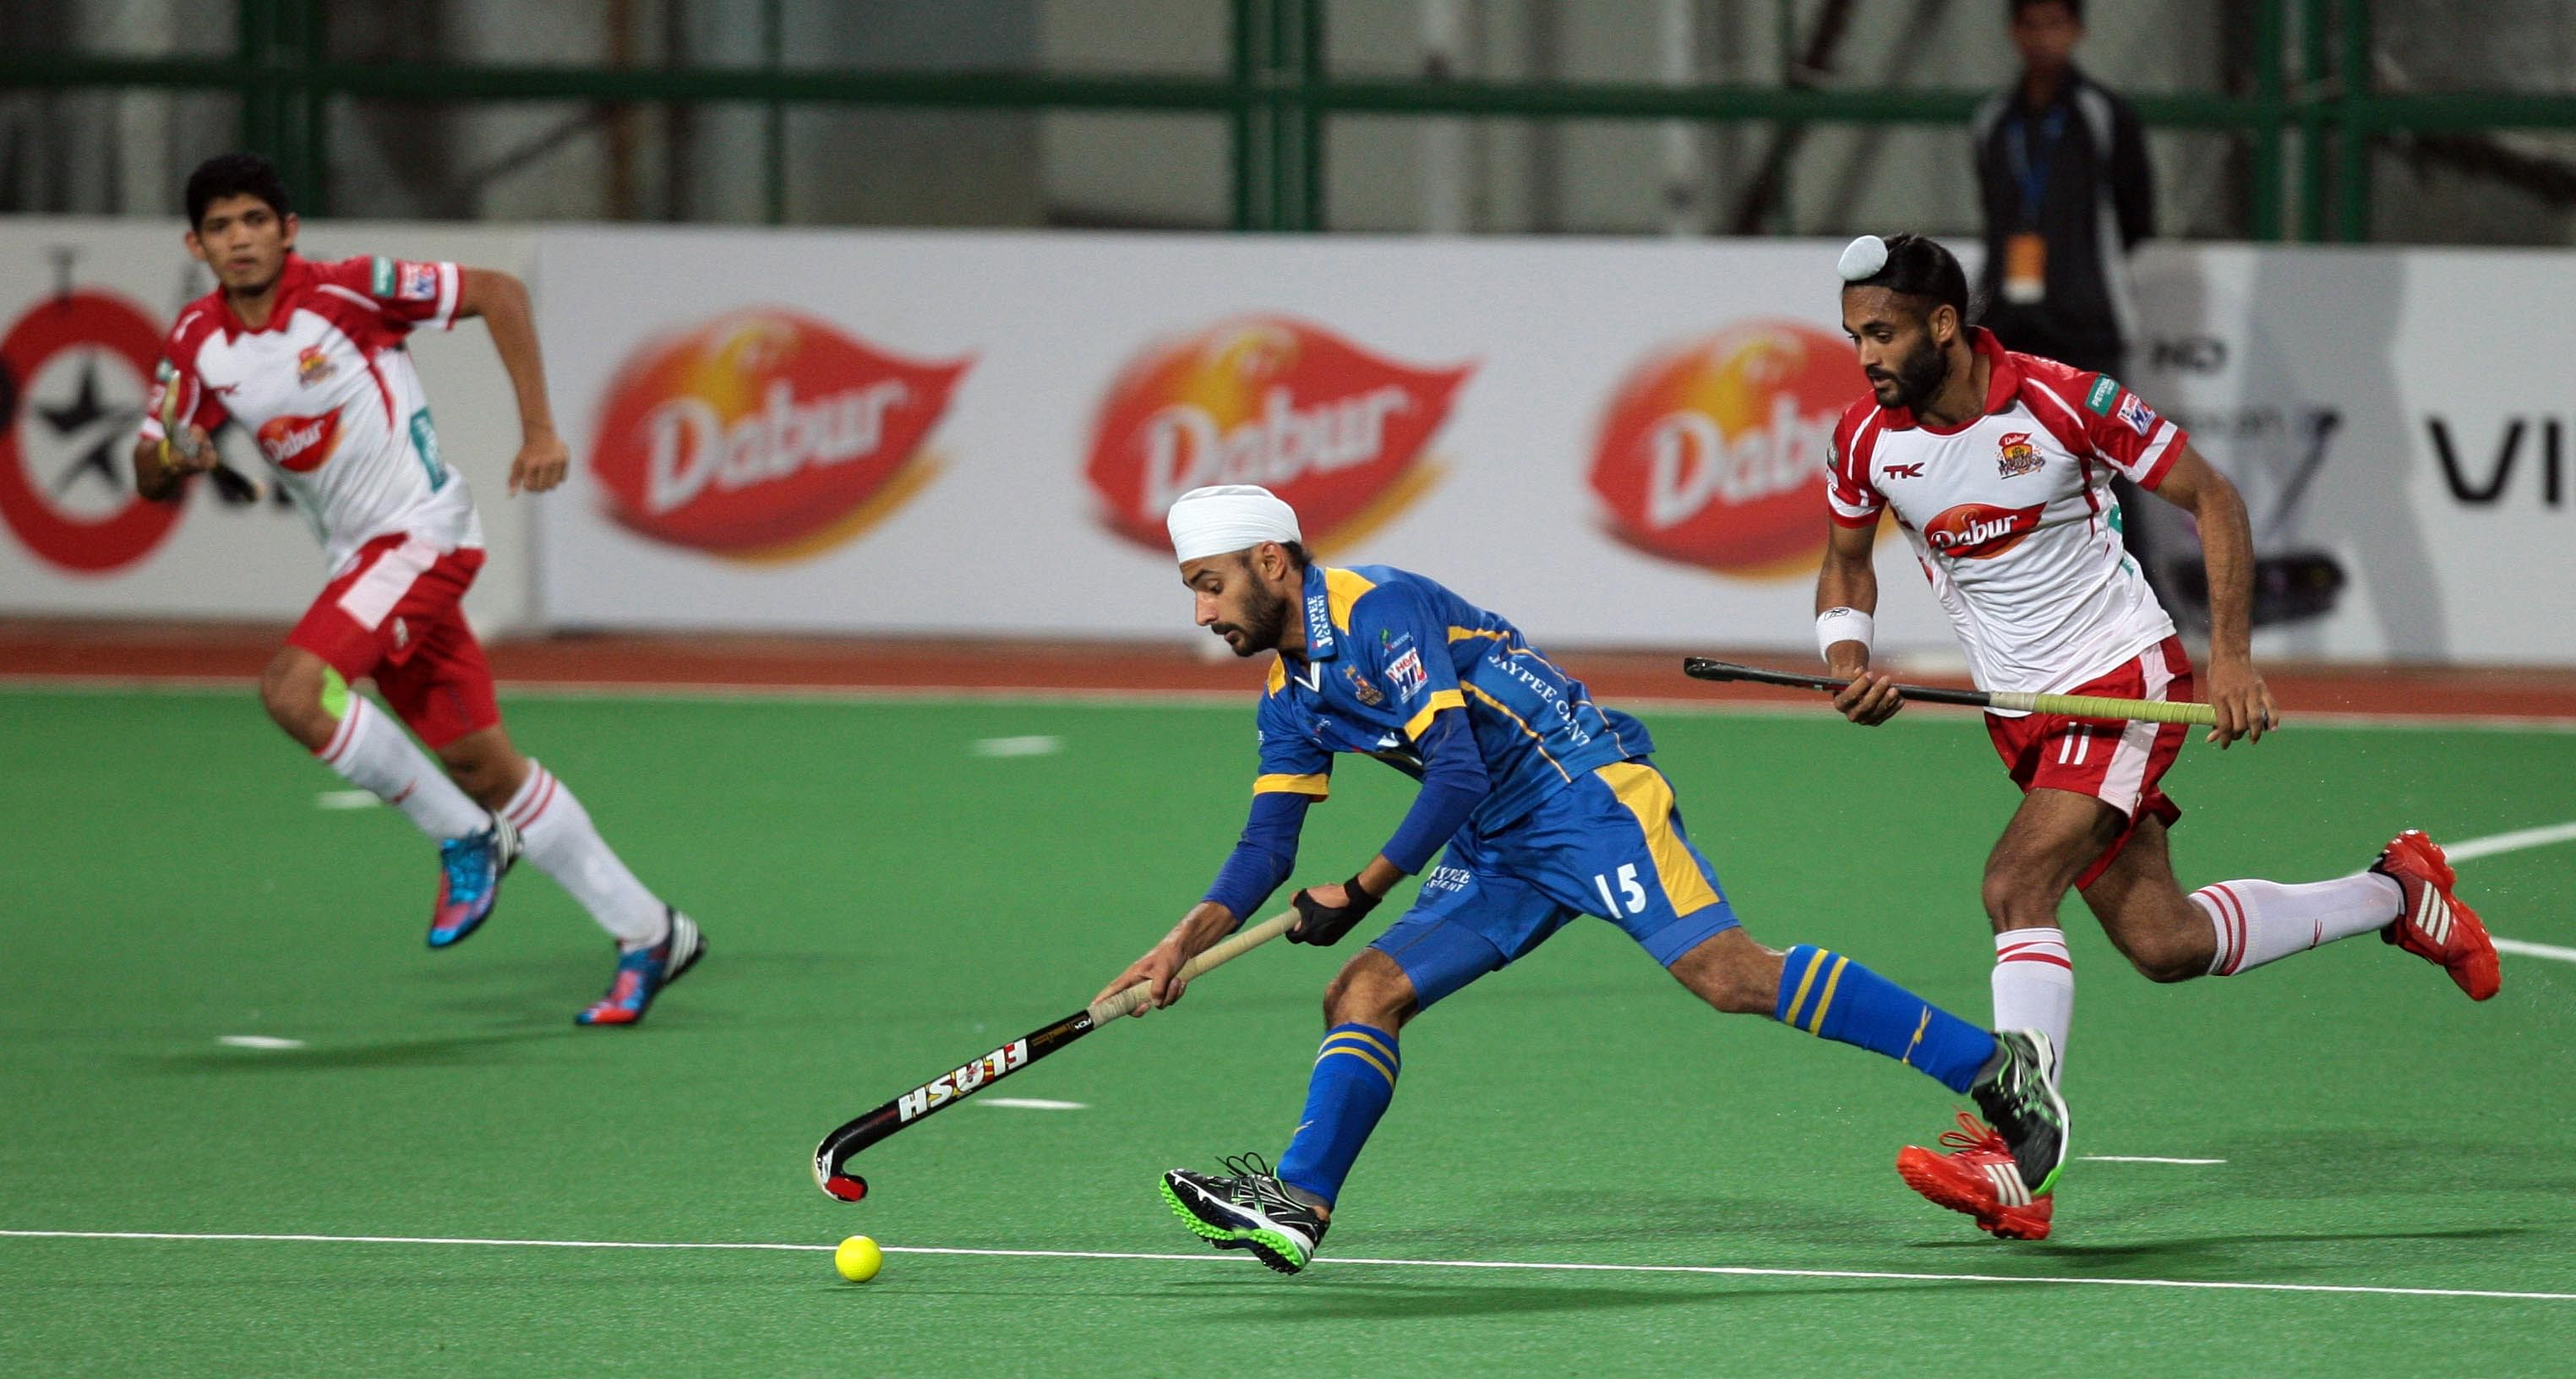 Malak Singh from JPW in action against MM